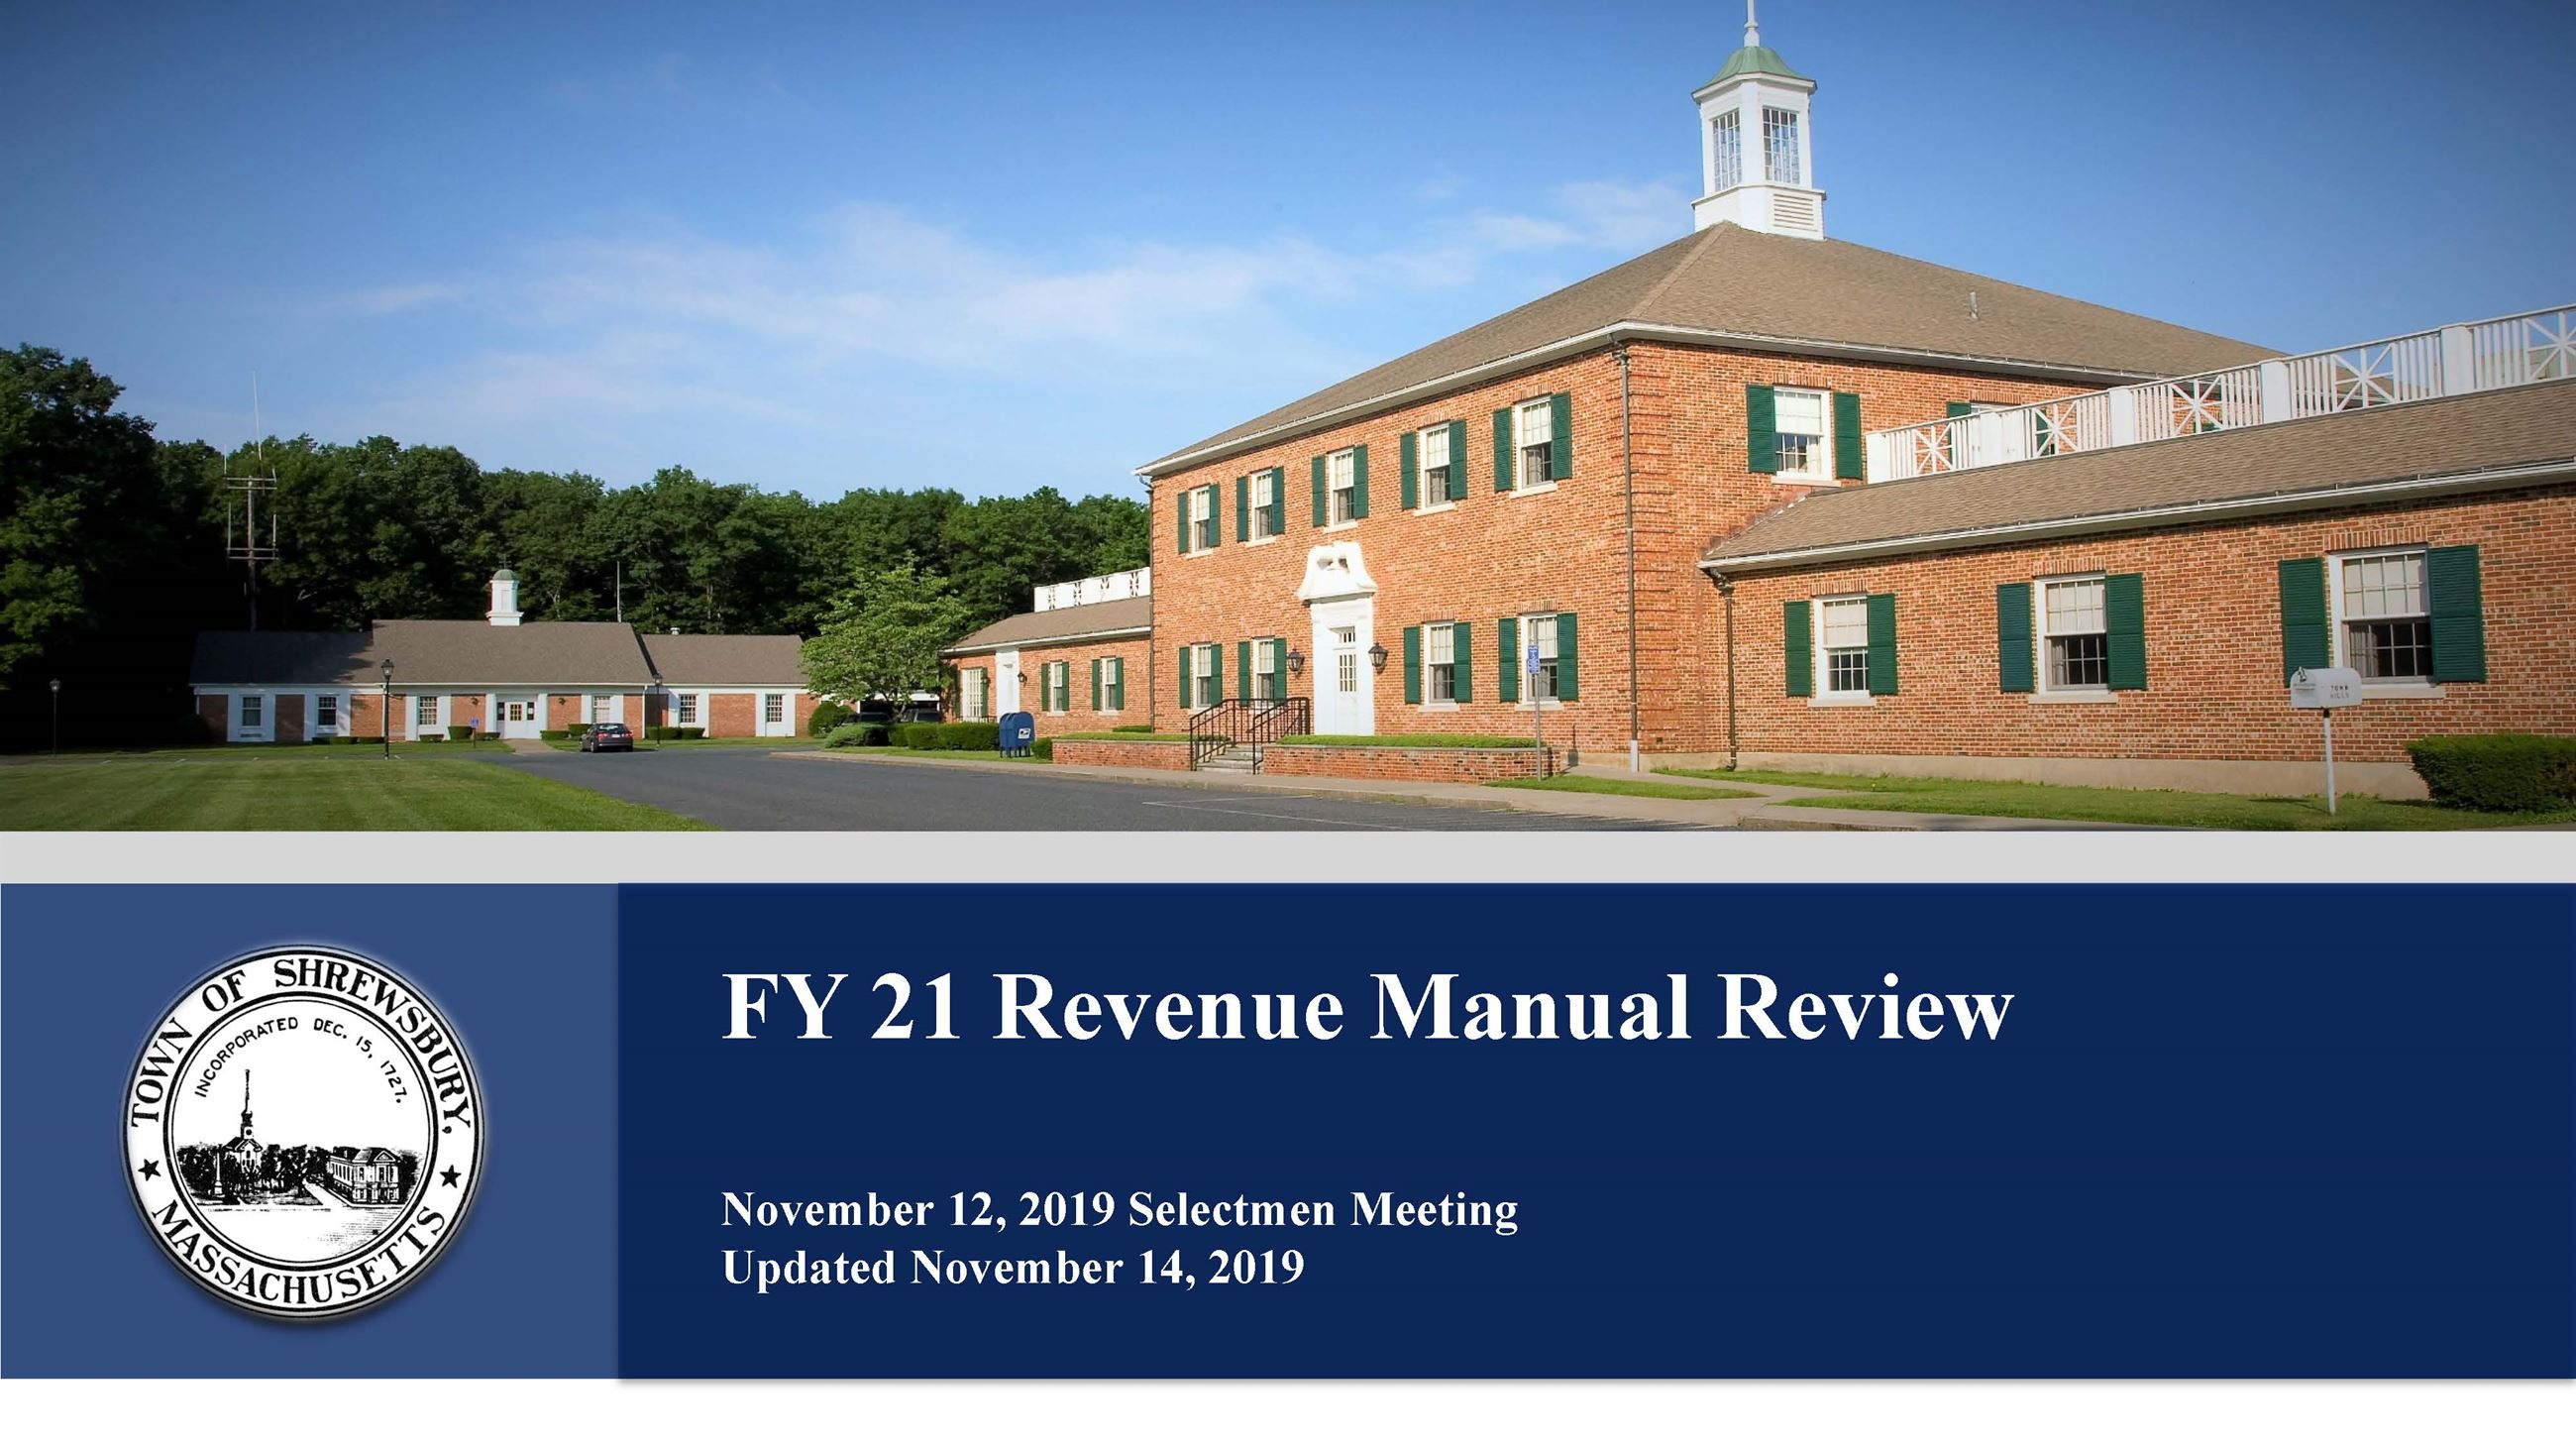 FY 21 Revenue Manual_BoS_Novembe 12, 2019_Updated November 14, 2019 (1)_Page_1